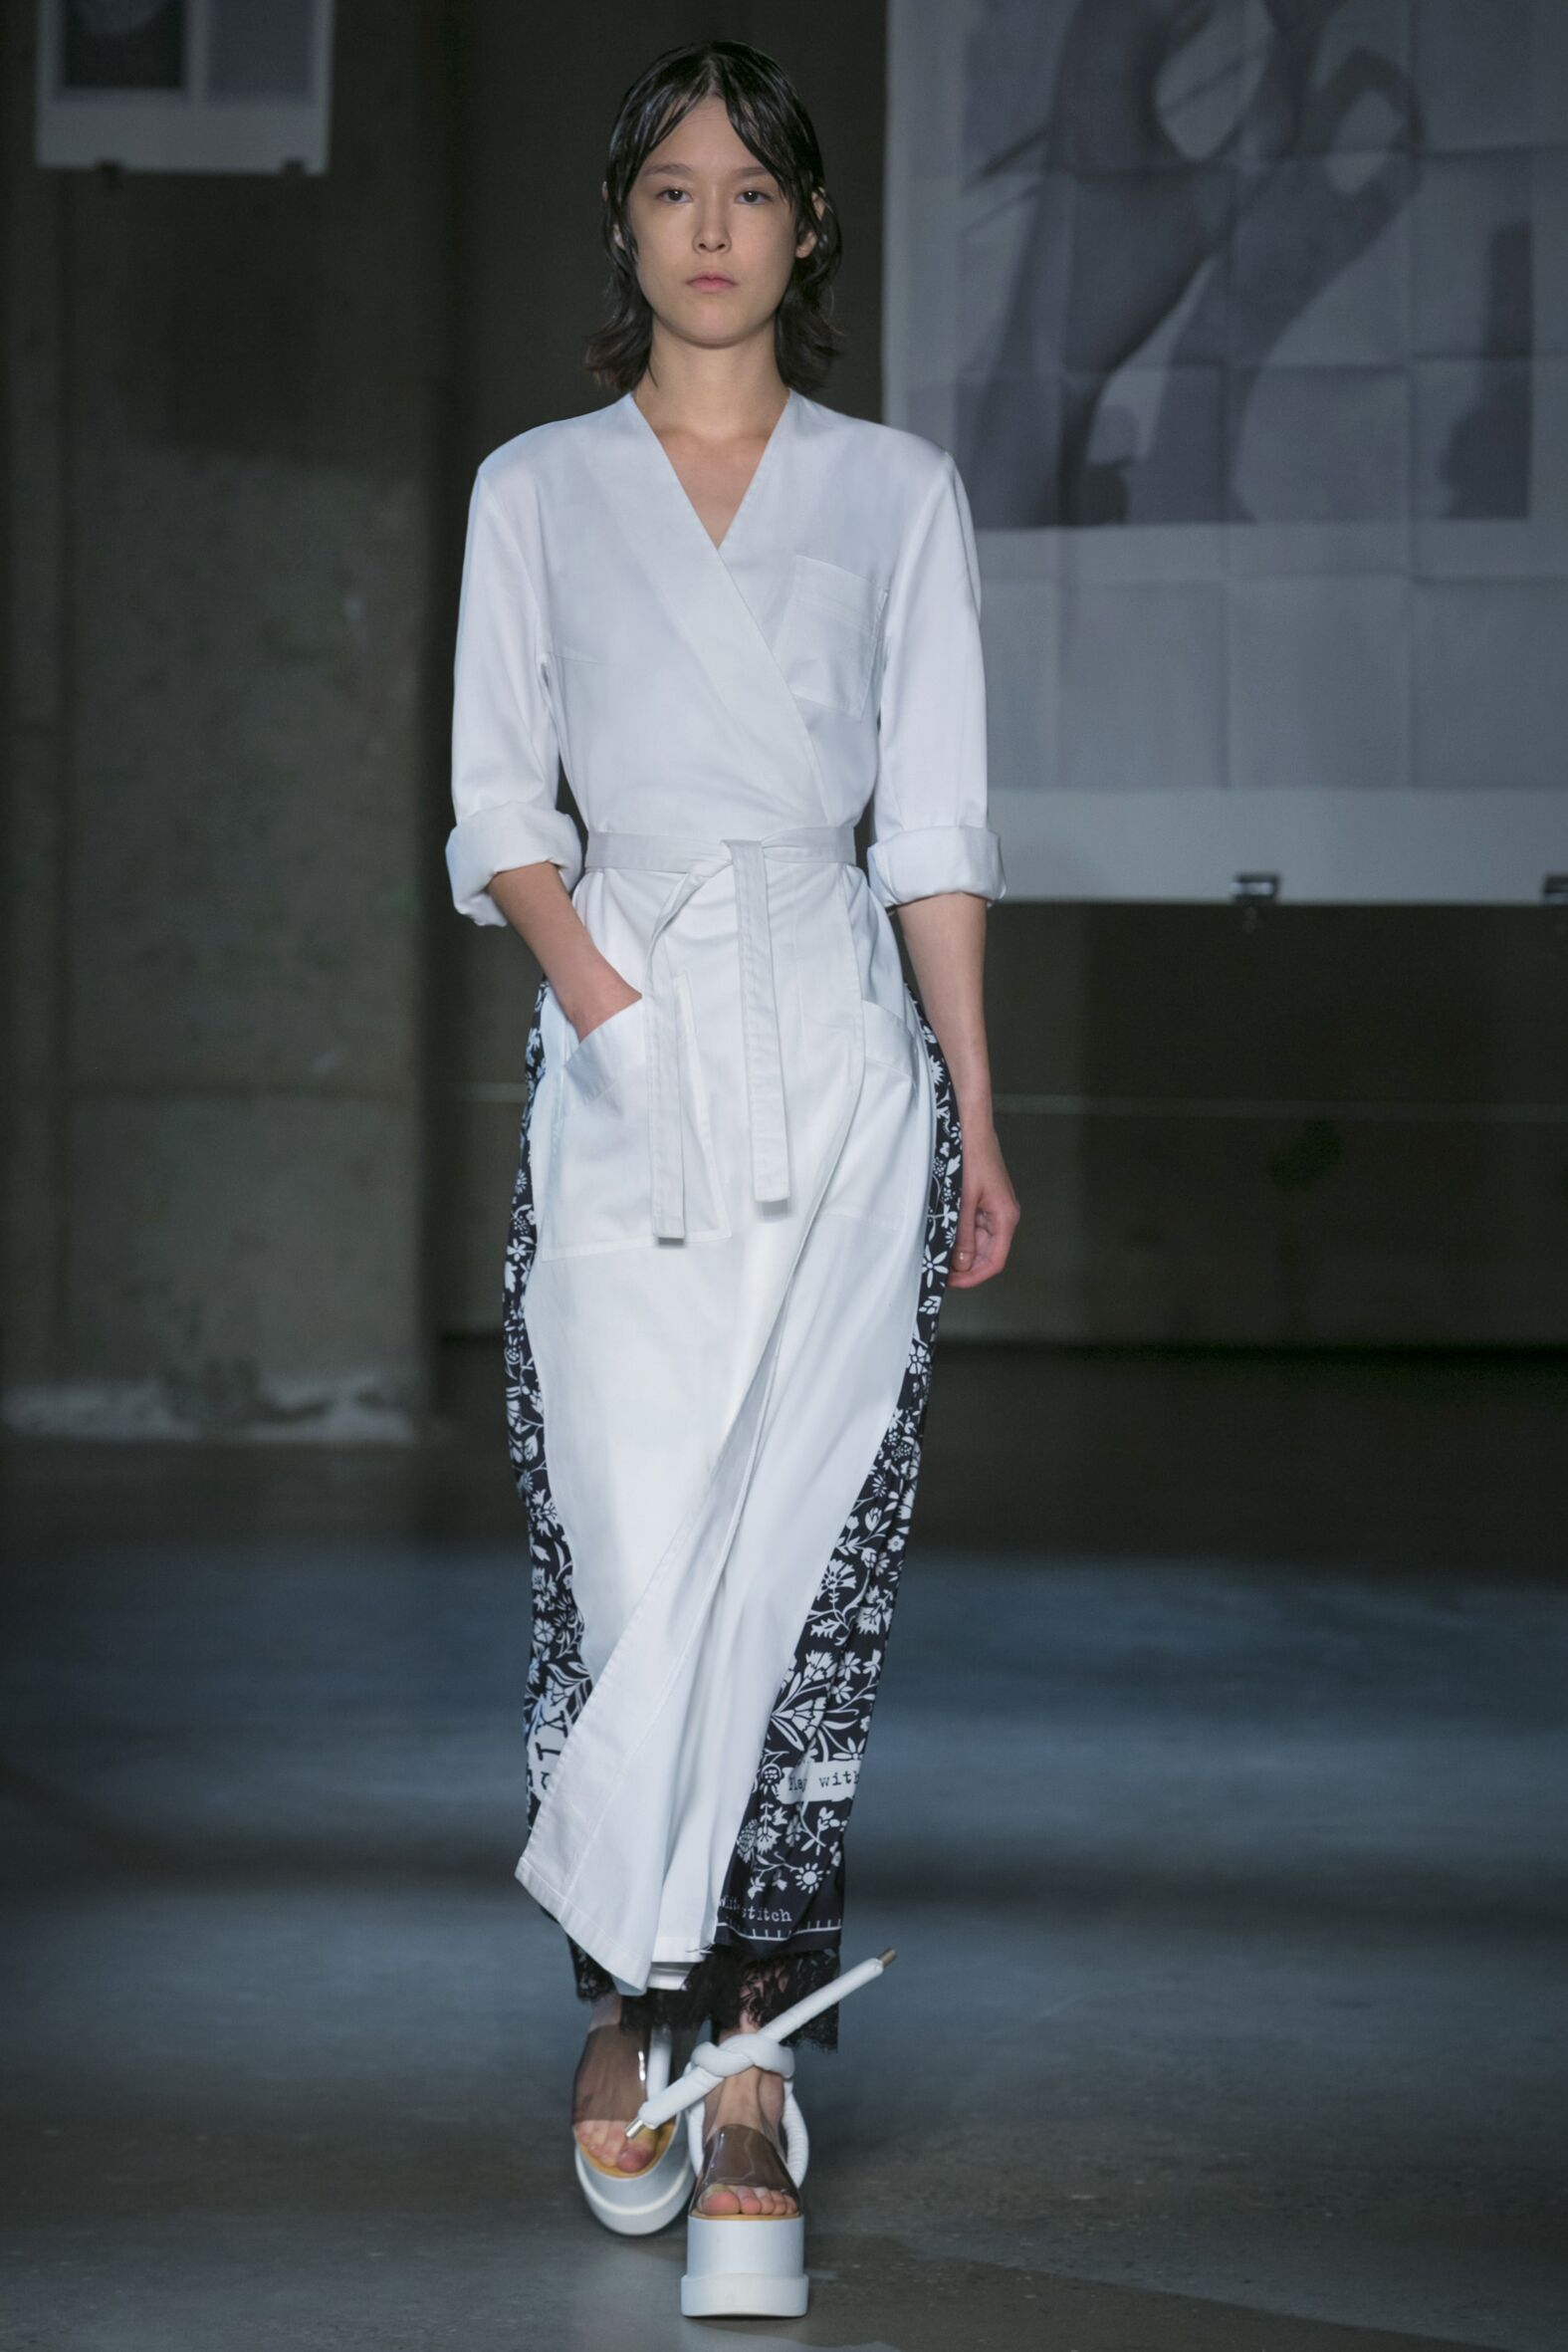 Spring Fashion 2015 MM6 Maison Martin Margiela